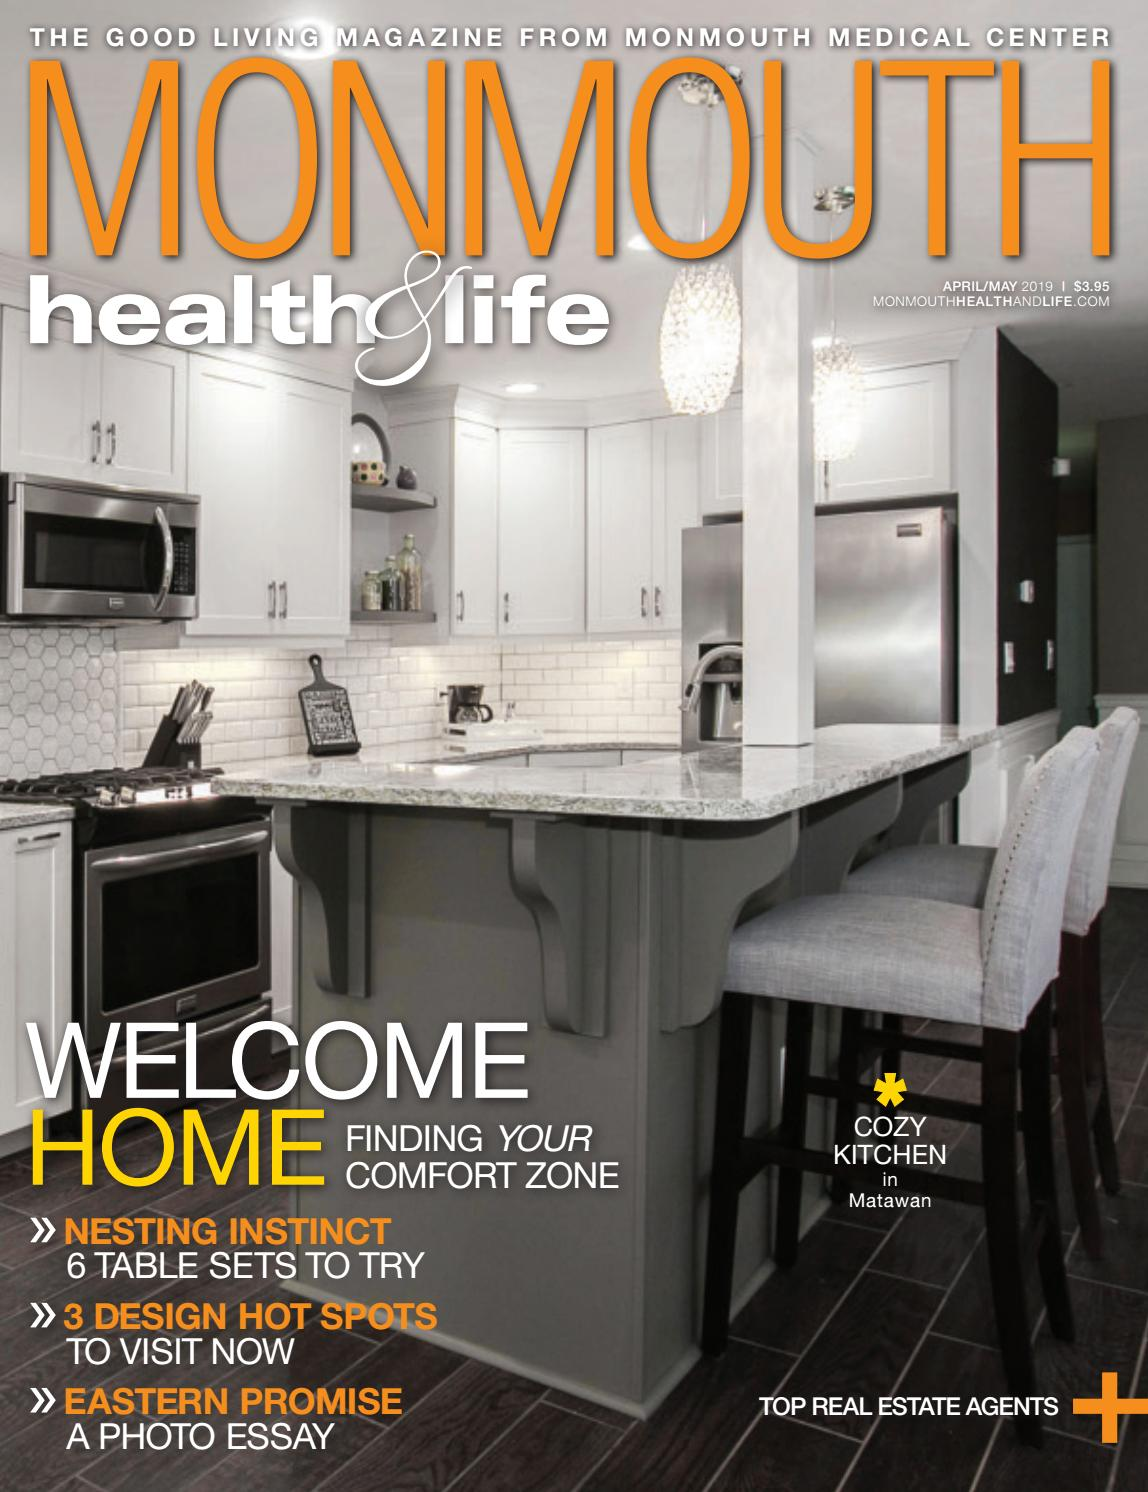 Monmouth Health Life April May 2019 By Wainscot Media Issuu